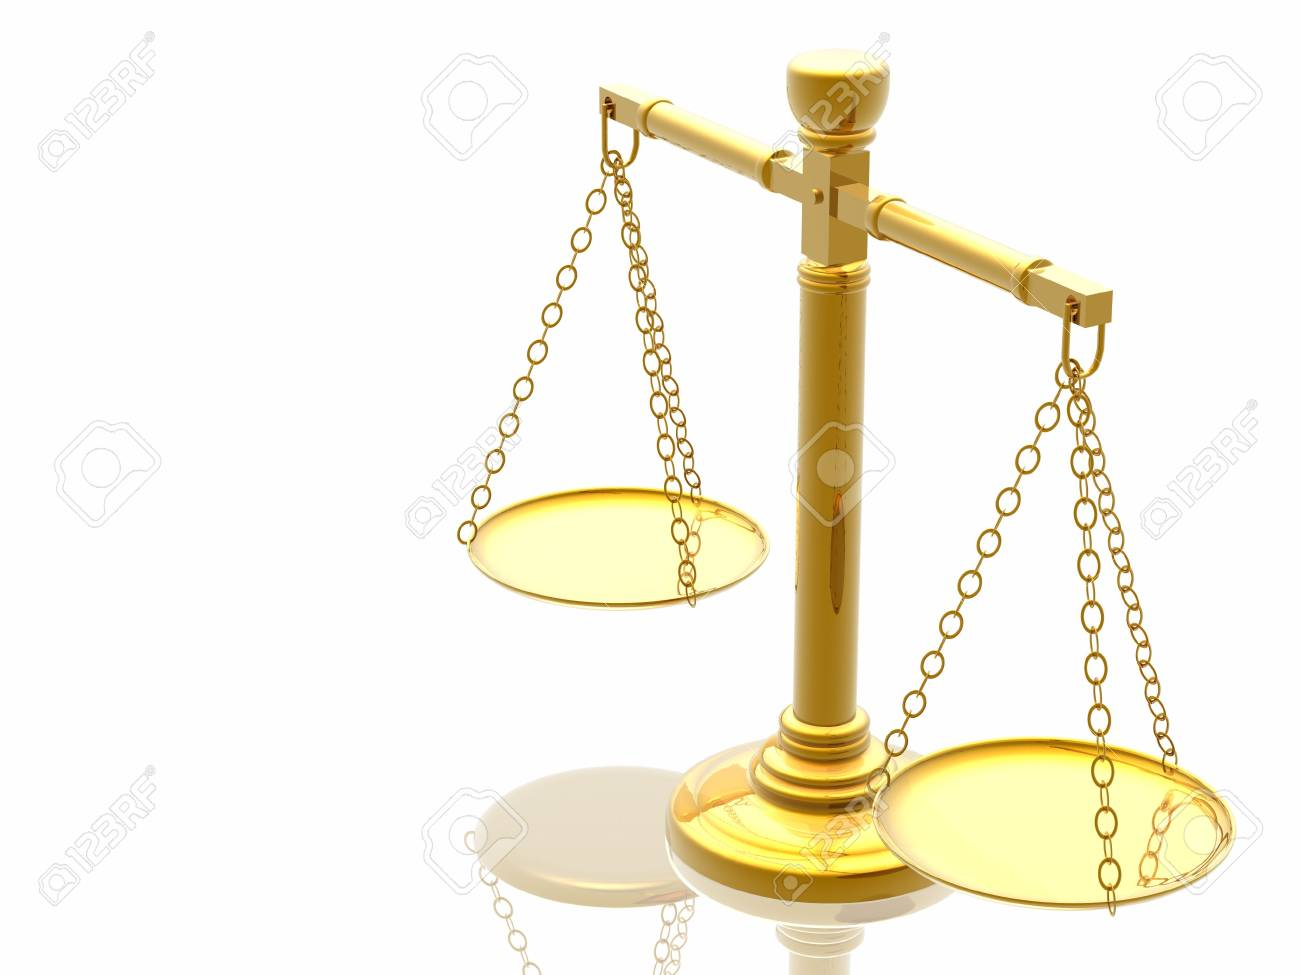 Justices scales (High Quality 3D Rendering) Stock Photo - 2516384